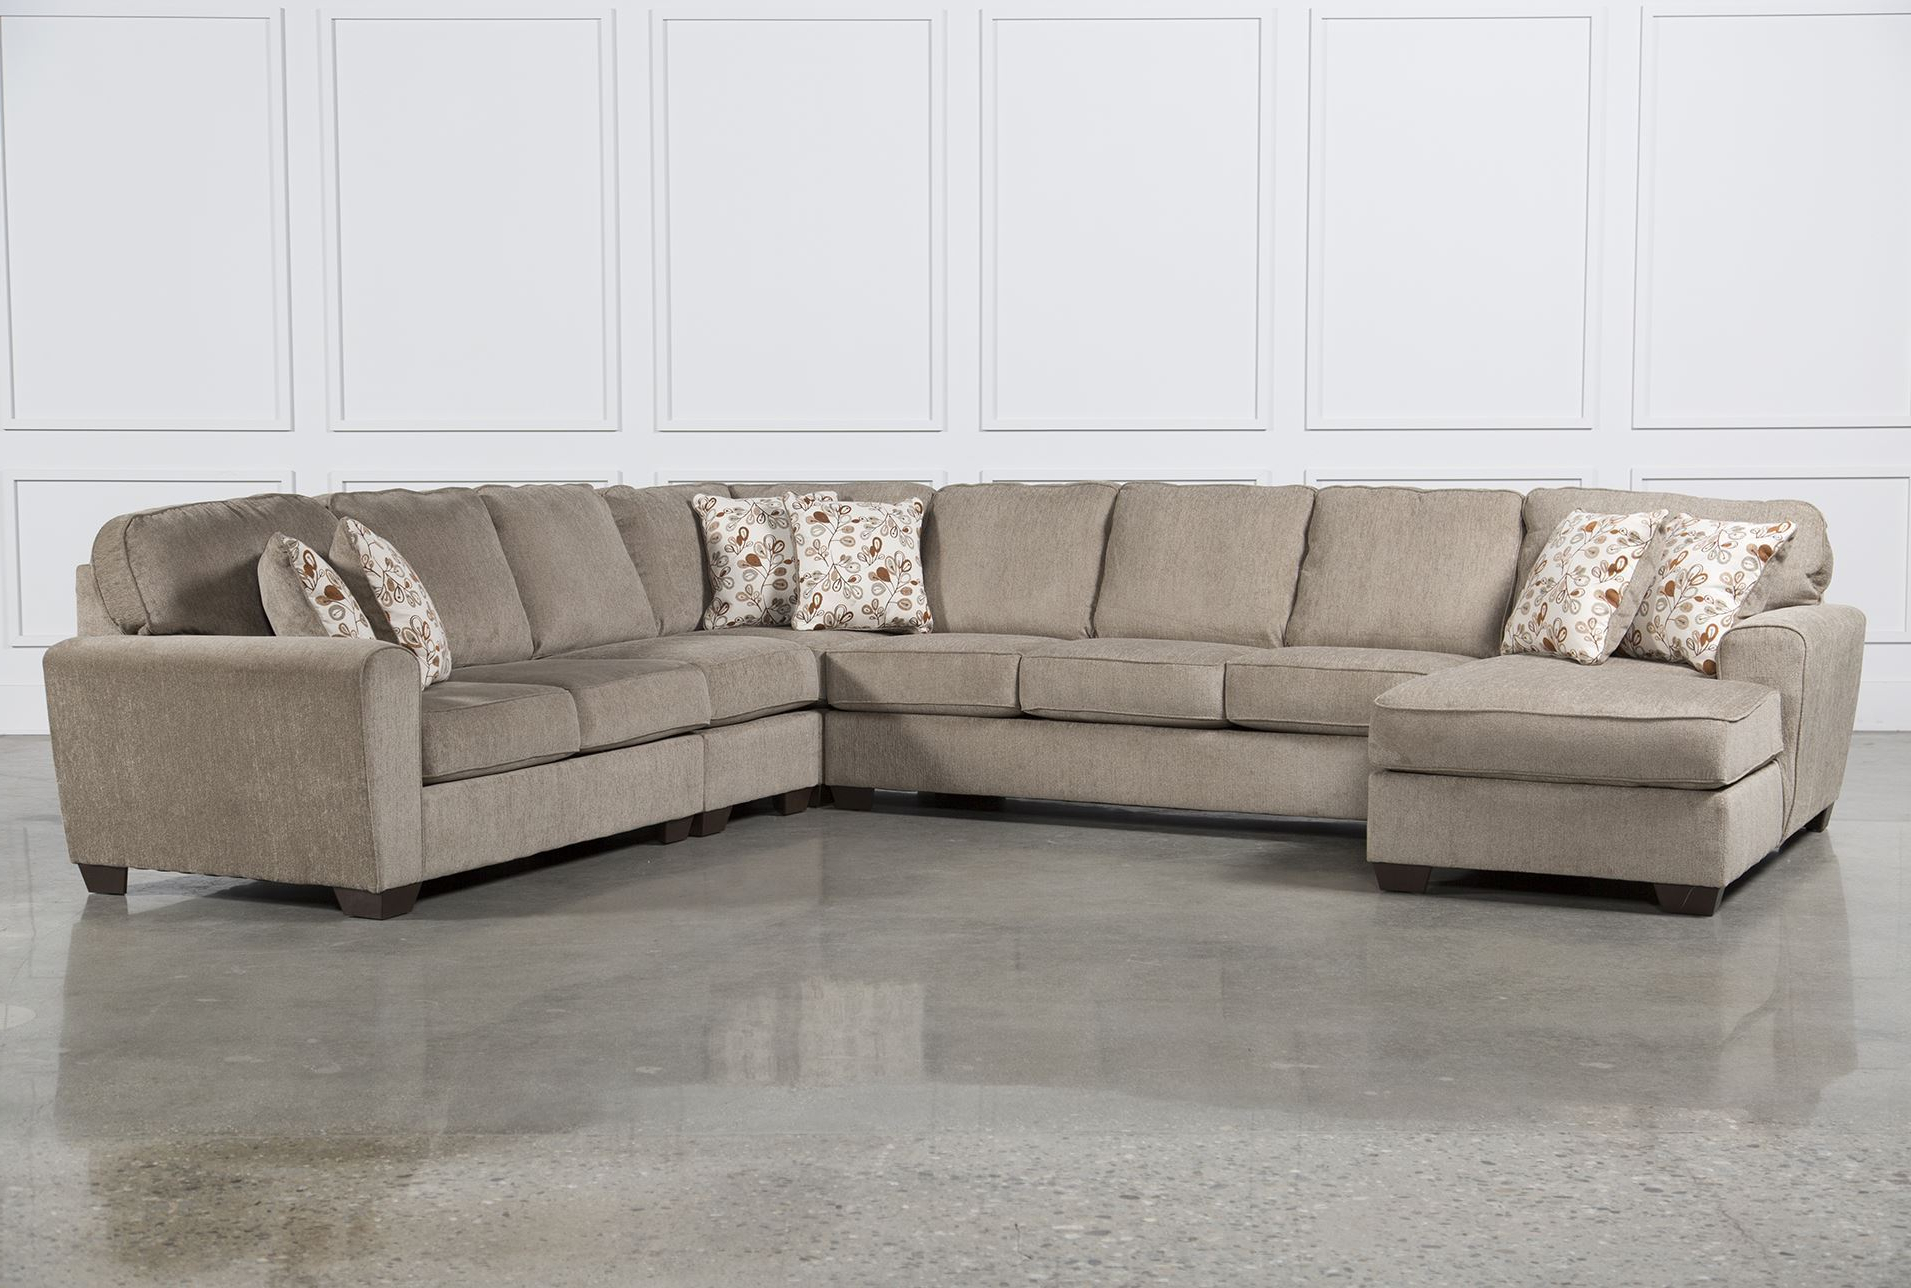 Kerri 2 Piece Sectionals With Laf Chaise Intended For Latest Ideas Of Laf Chaise On Kerri 2 Piece Sectional W Laf Chaise Living (View 5 of 20)